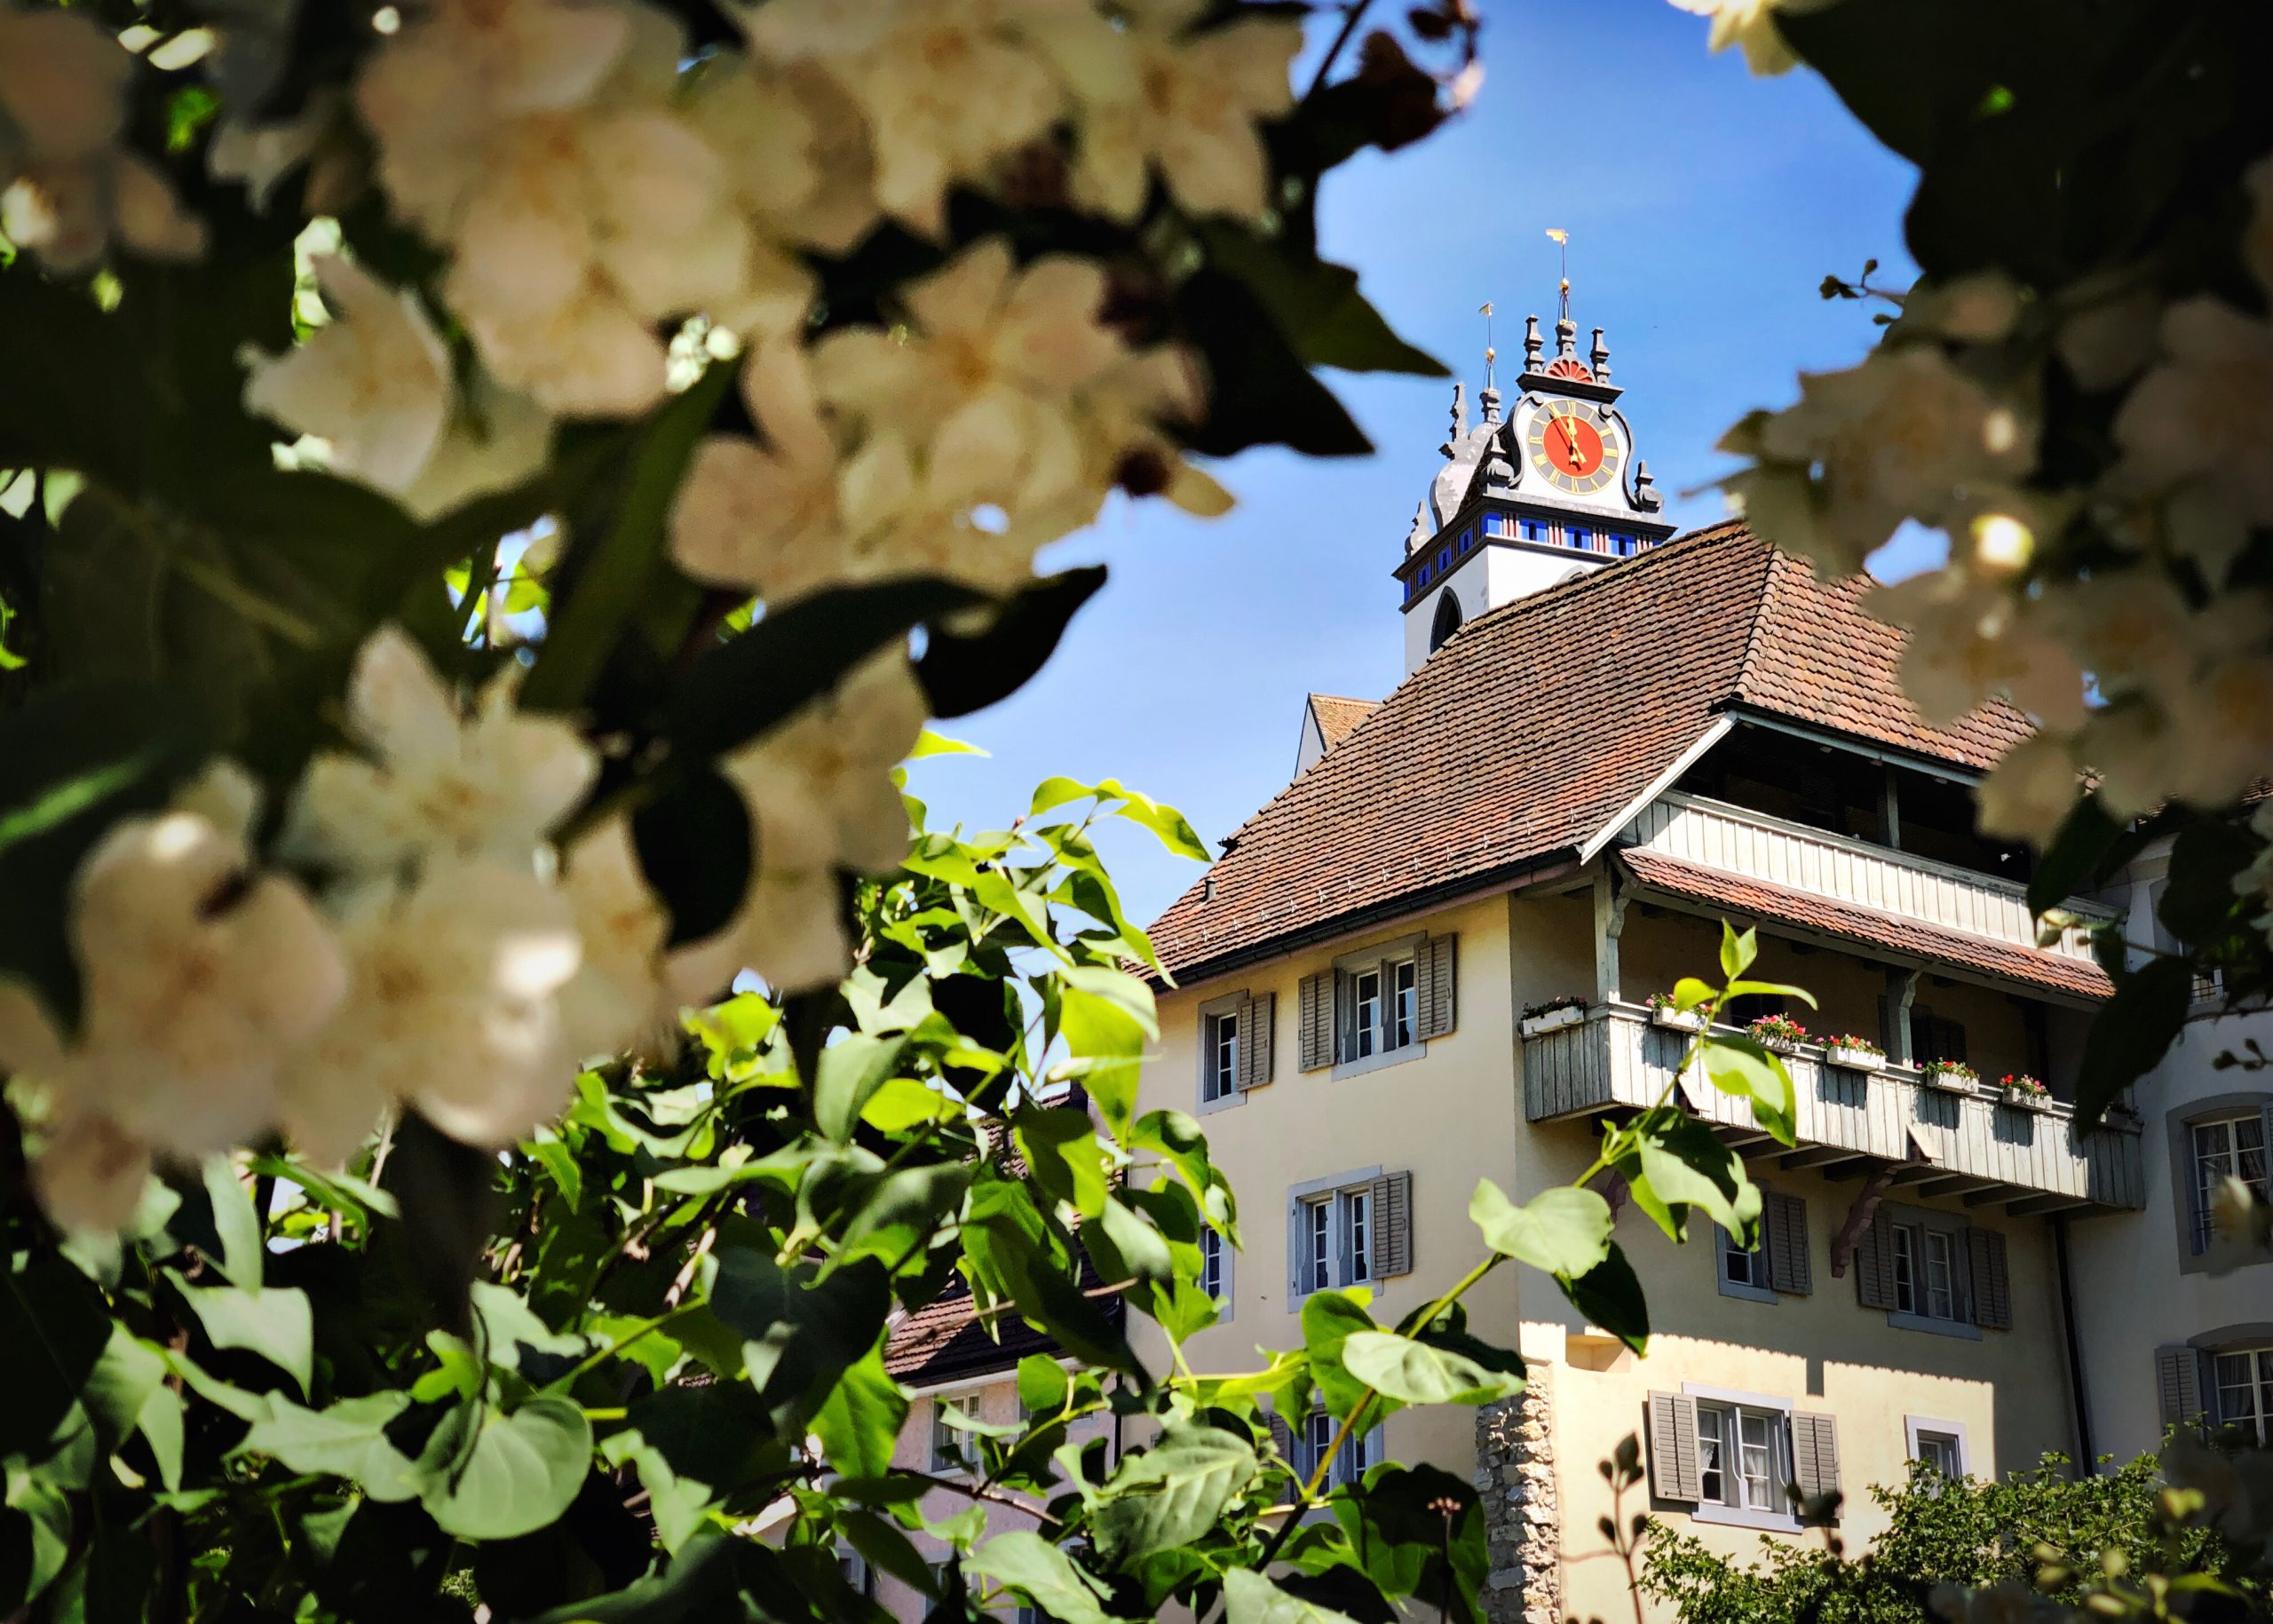 Day Trip to Aarau – Top 10 Things to Do in the Capital of Canton Aargau